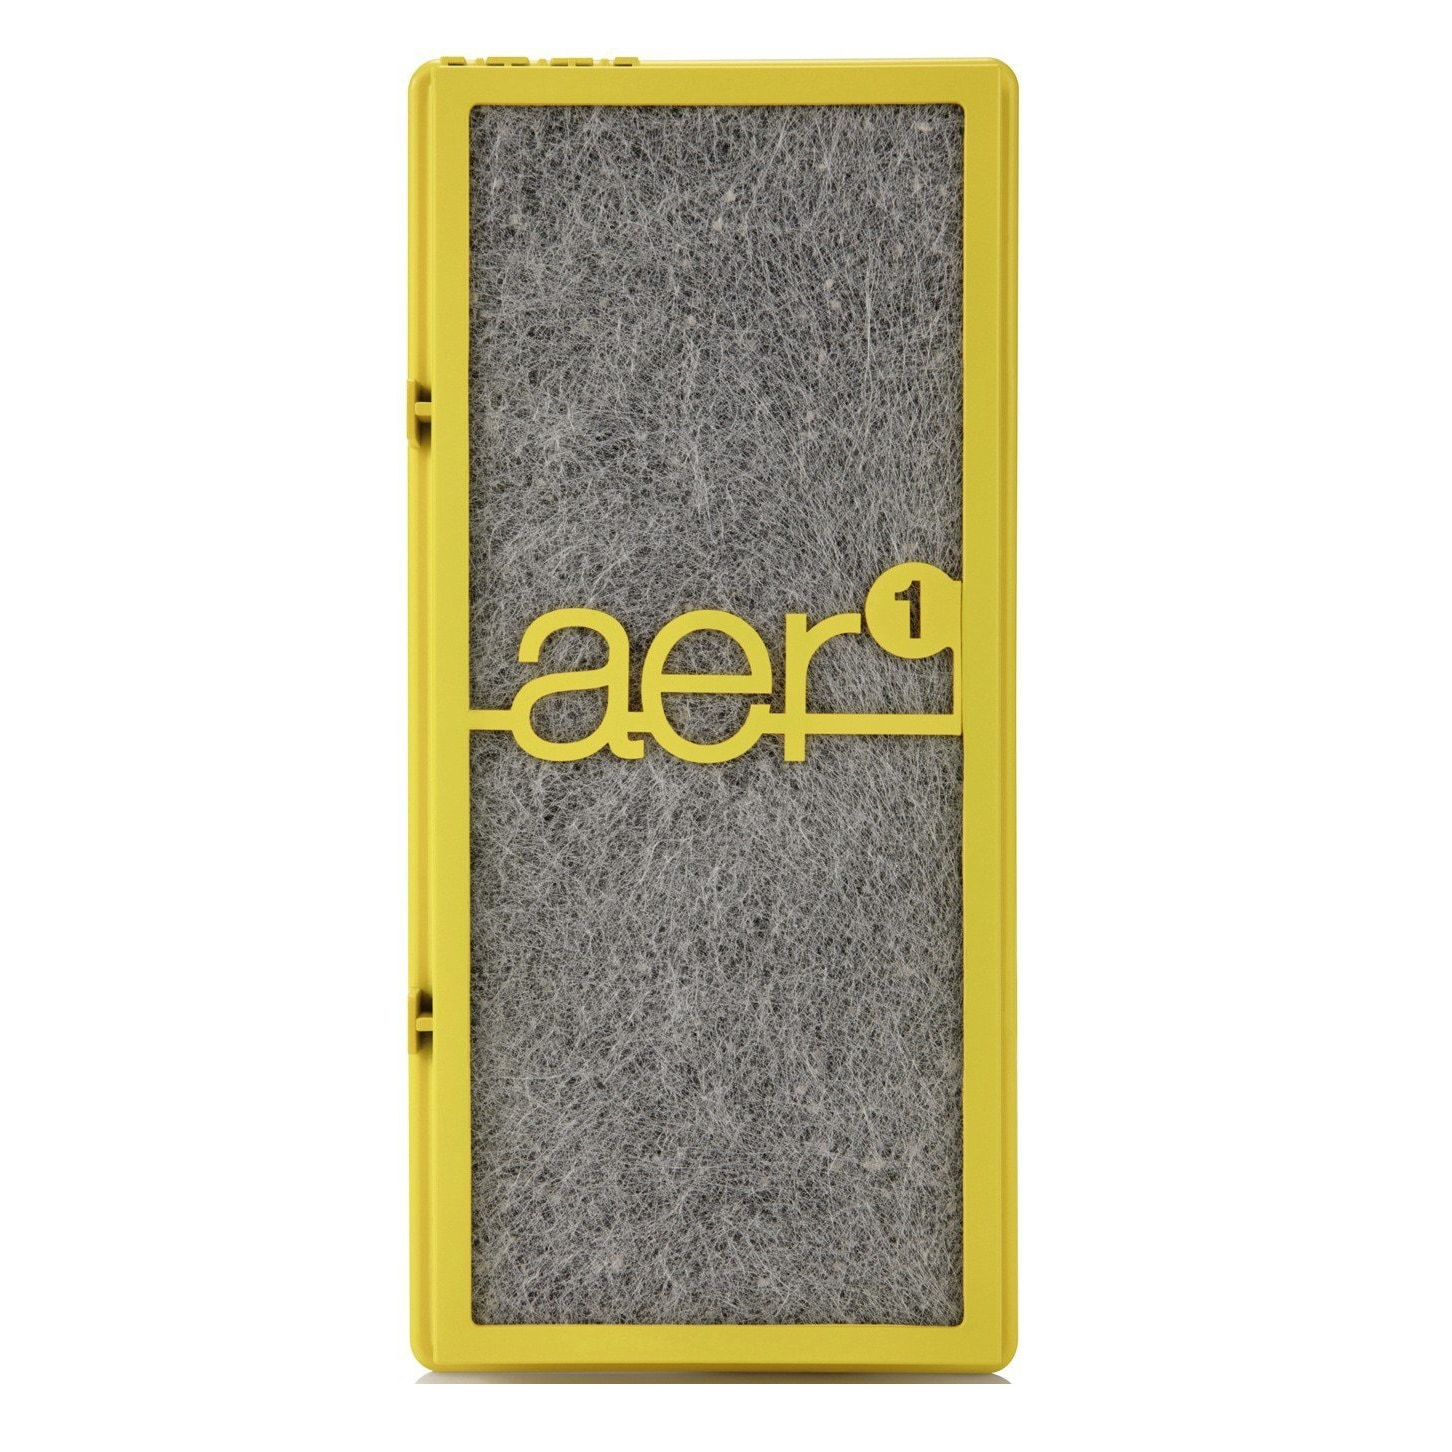 Holmes aer1 Odor Eliminator Replacement Filter - Activate...